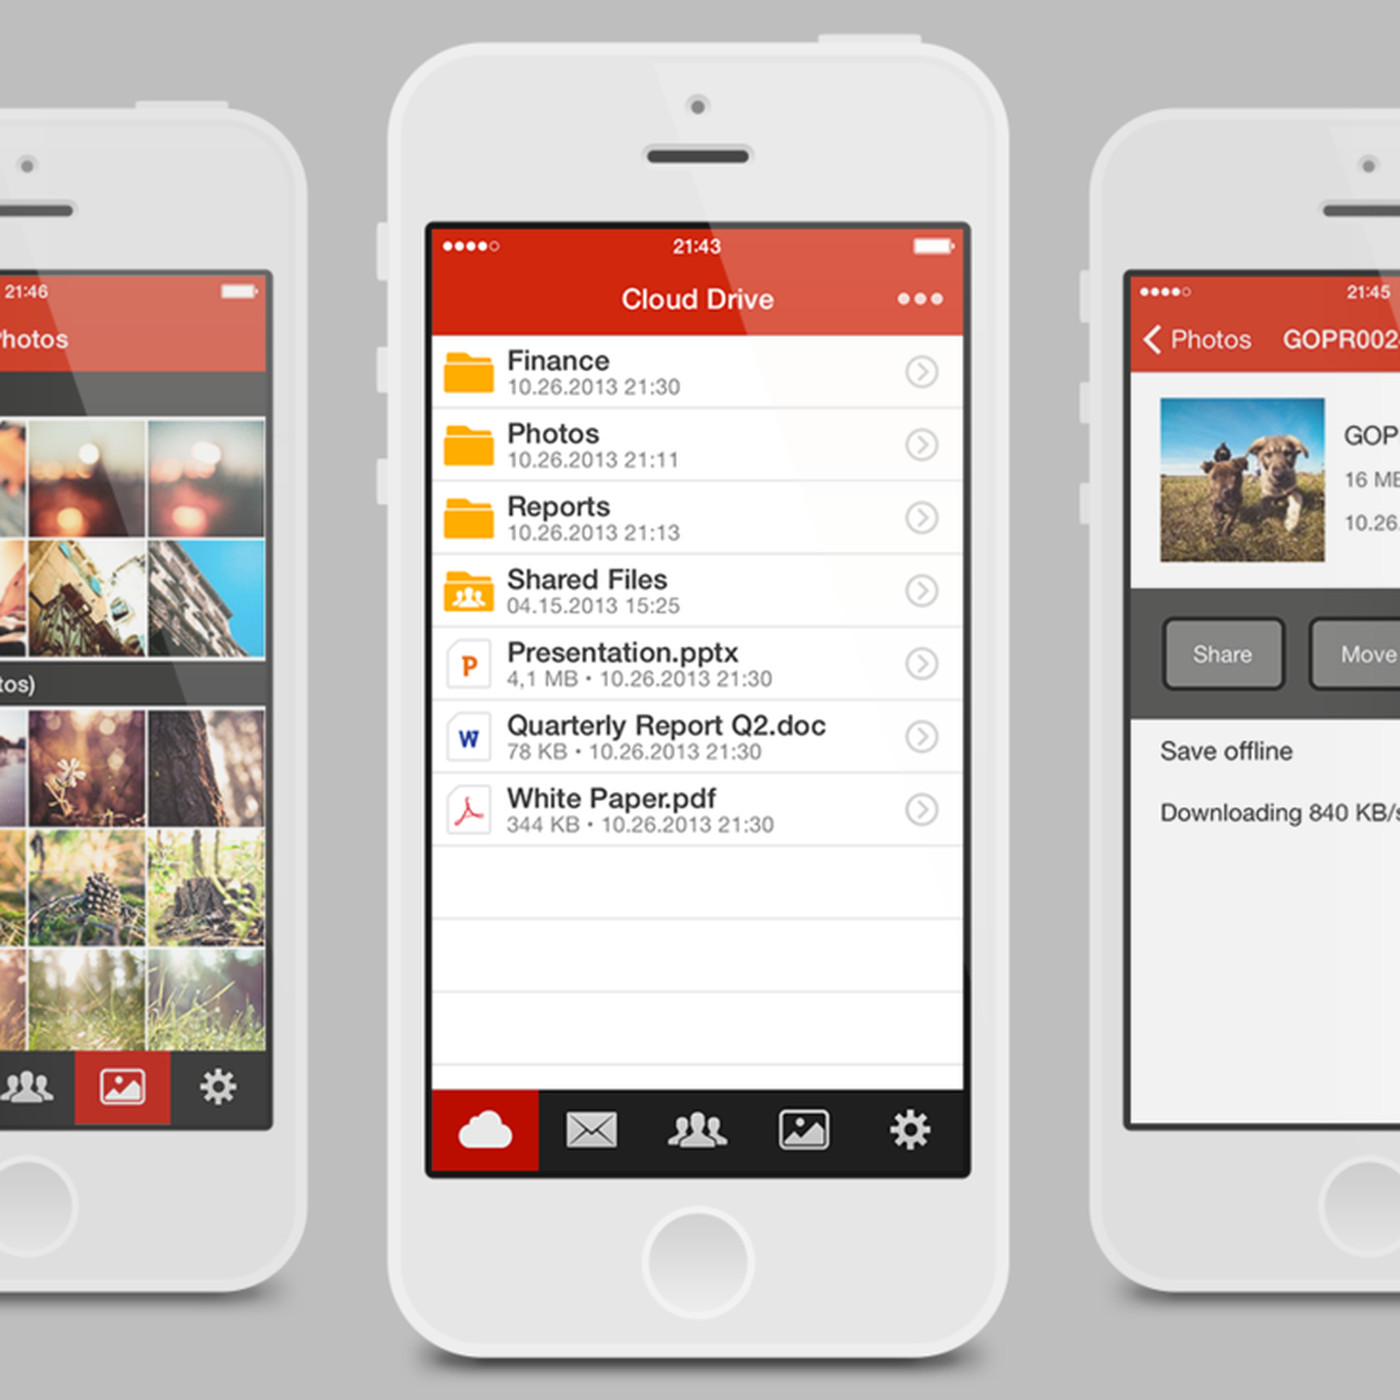 Kim Dotcom's Mega comes to iPhone with file sharing and in